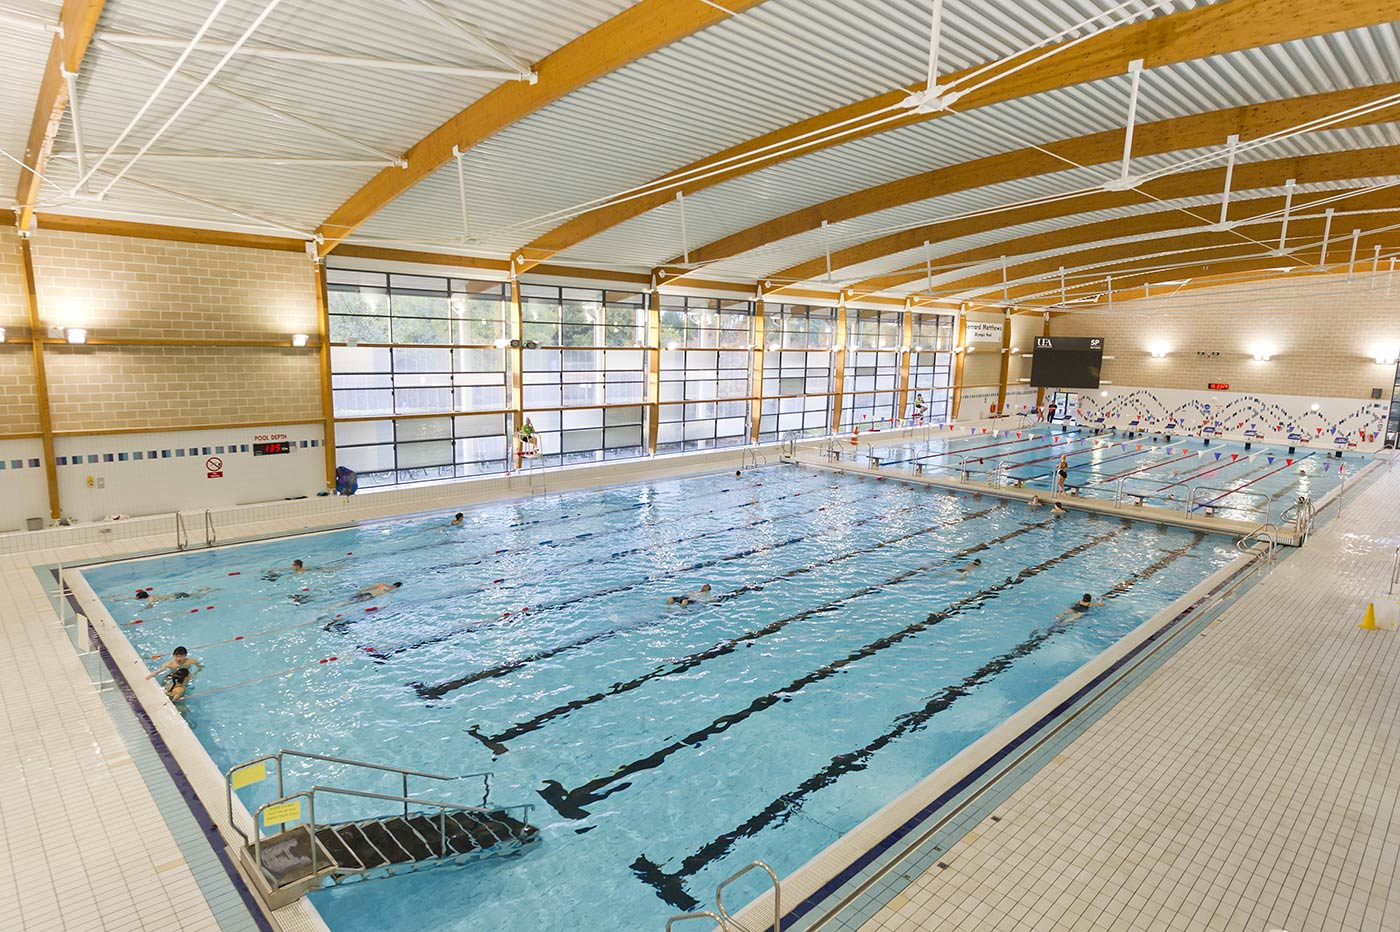 Enjoy the on-campus 50m Olympic-sized swimming pool